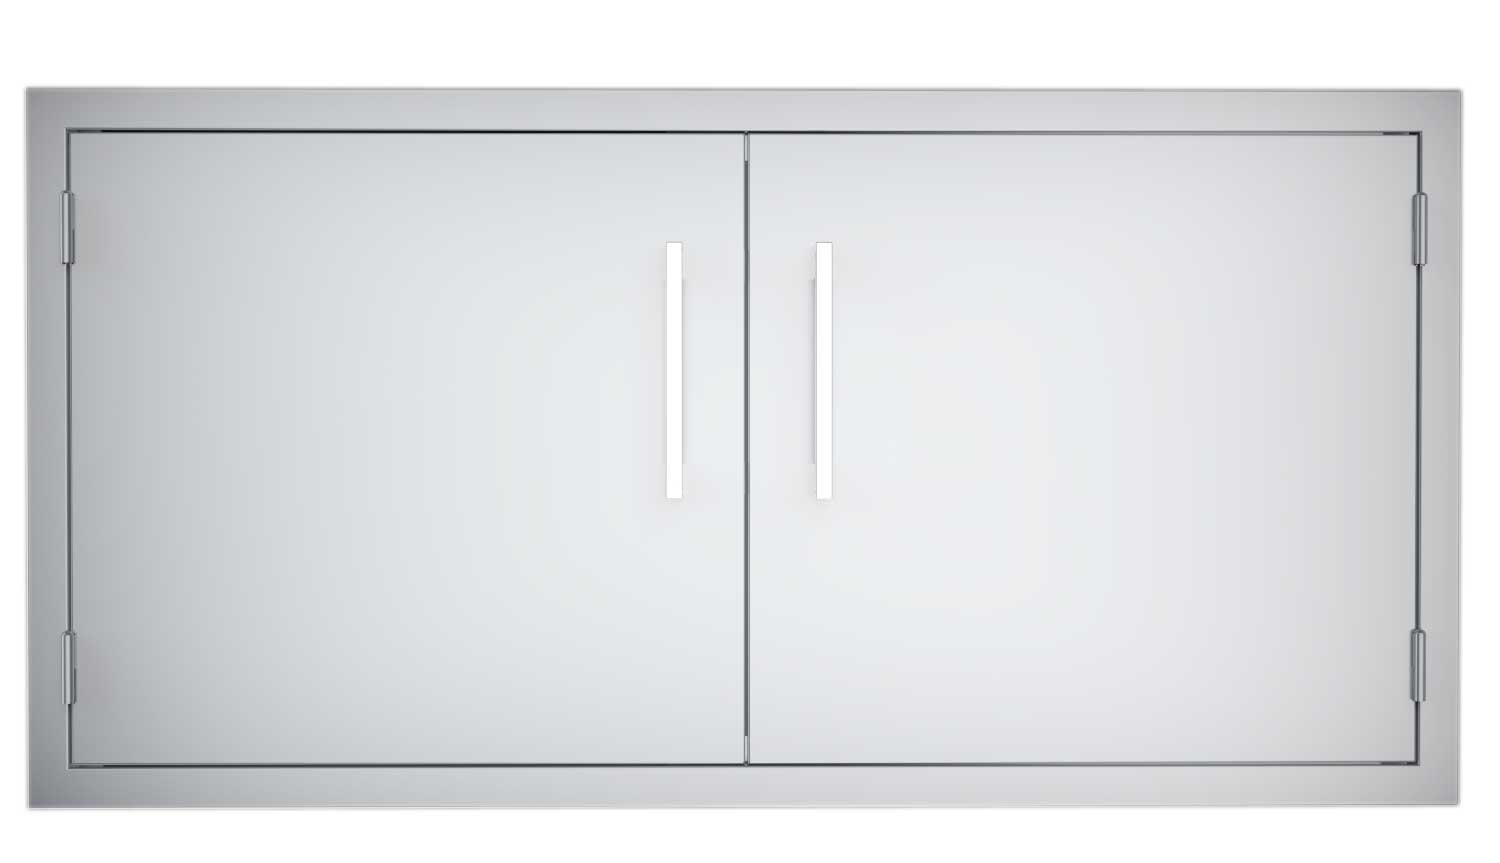 Sunstone B-DD42 Double Raised Doors for Stone Island with Shelves, 42-Inch